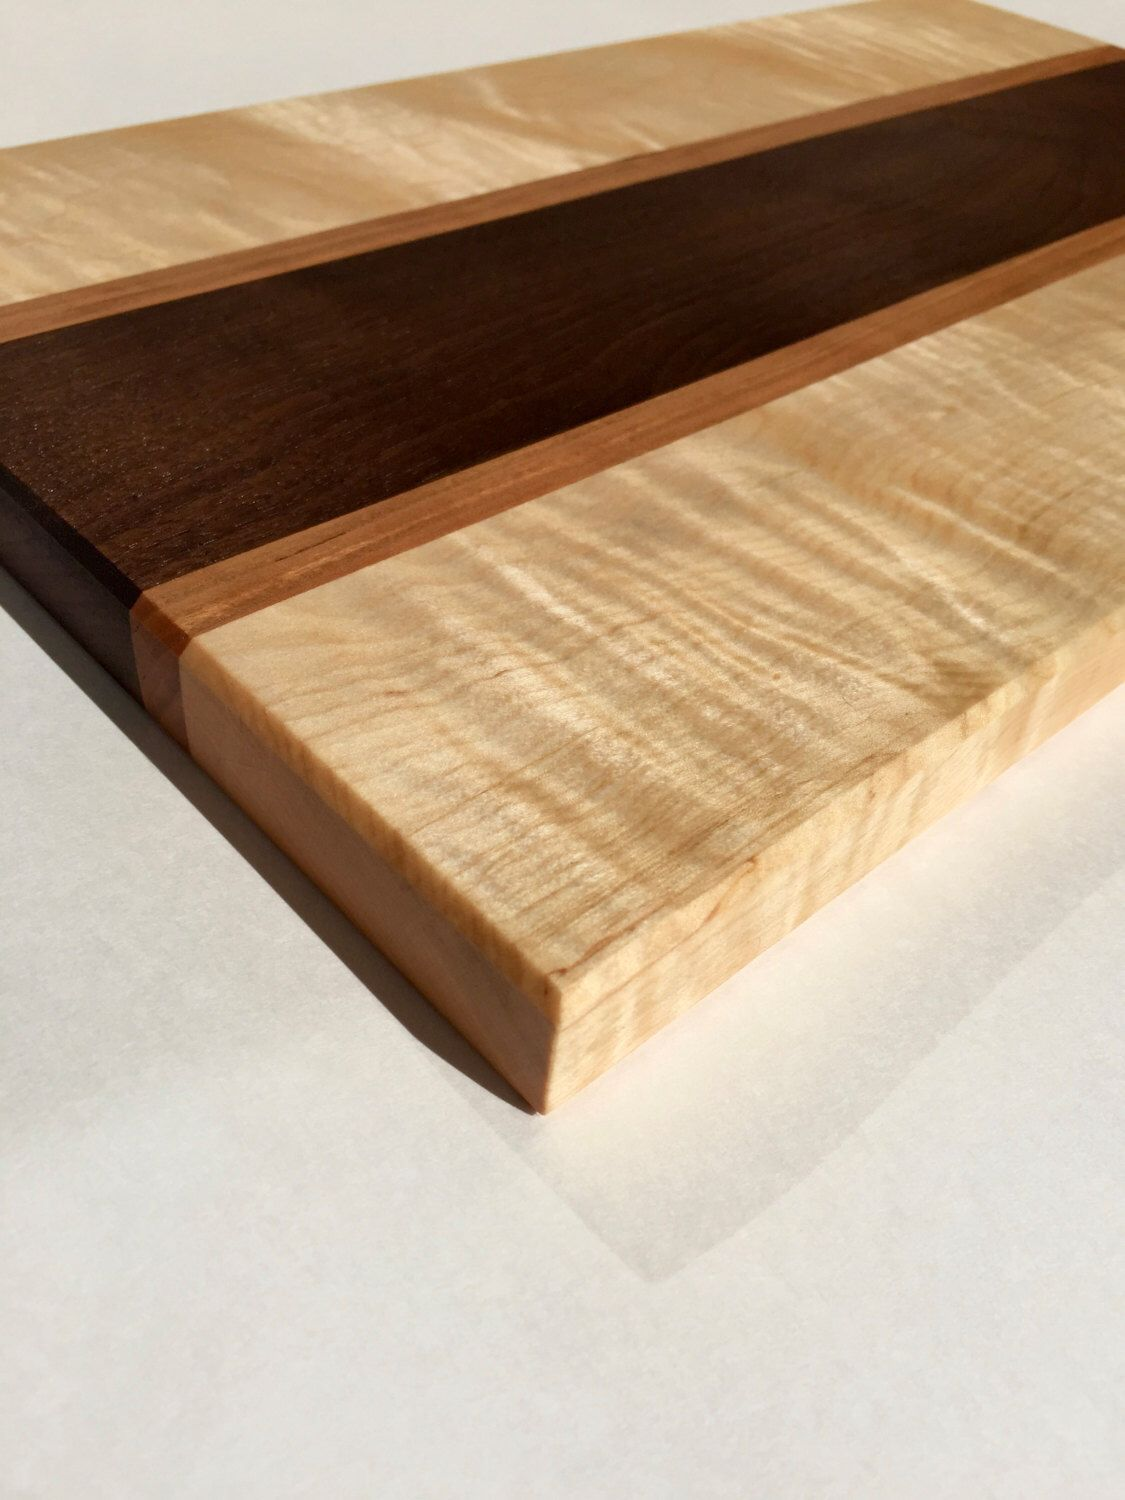 Large Wood Cutting Board Part - 28: Large Handmade Wooden Cutting Board - Cherry Wood And Walnut